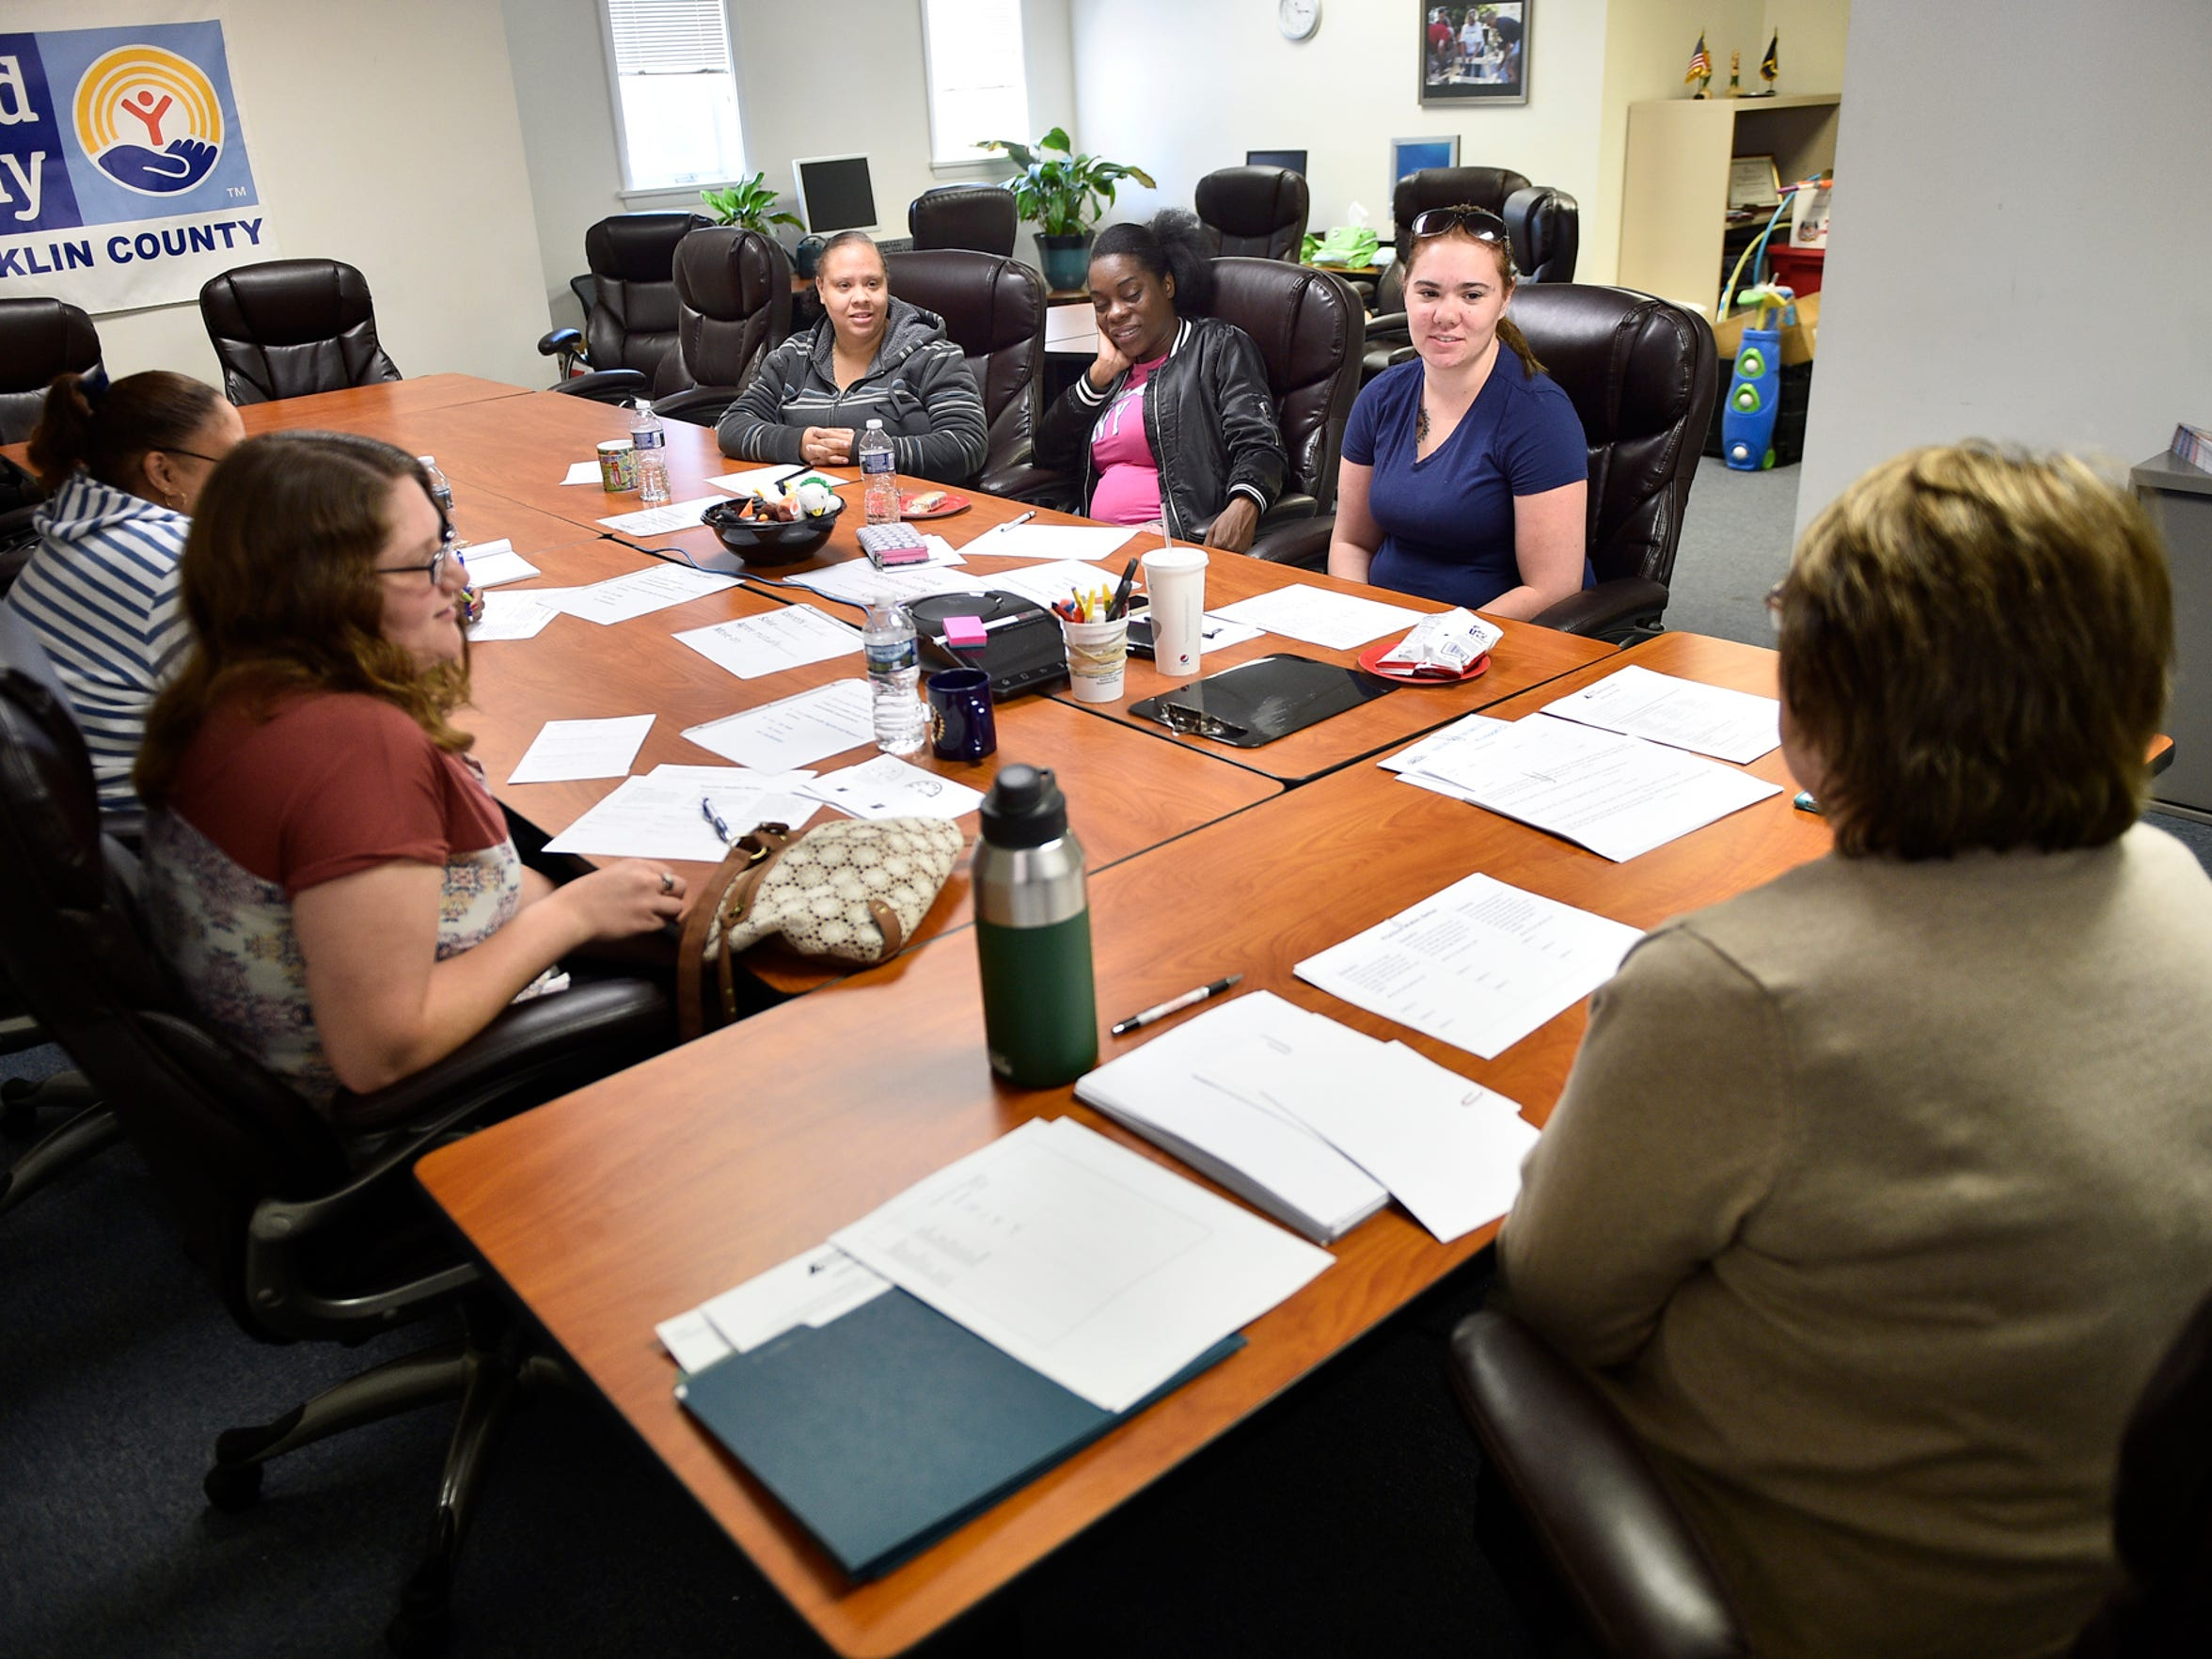 Cheri Kearney, right,  leads a class to help students prepare for an upcoming nursing class. The Franklin County United Way hosts the Stepping Forward Works class on Tuesday, May 16, 2017 at its Second Street offices.